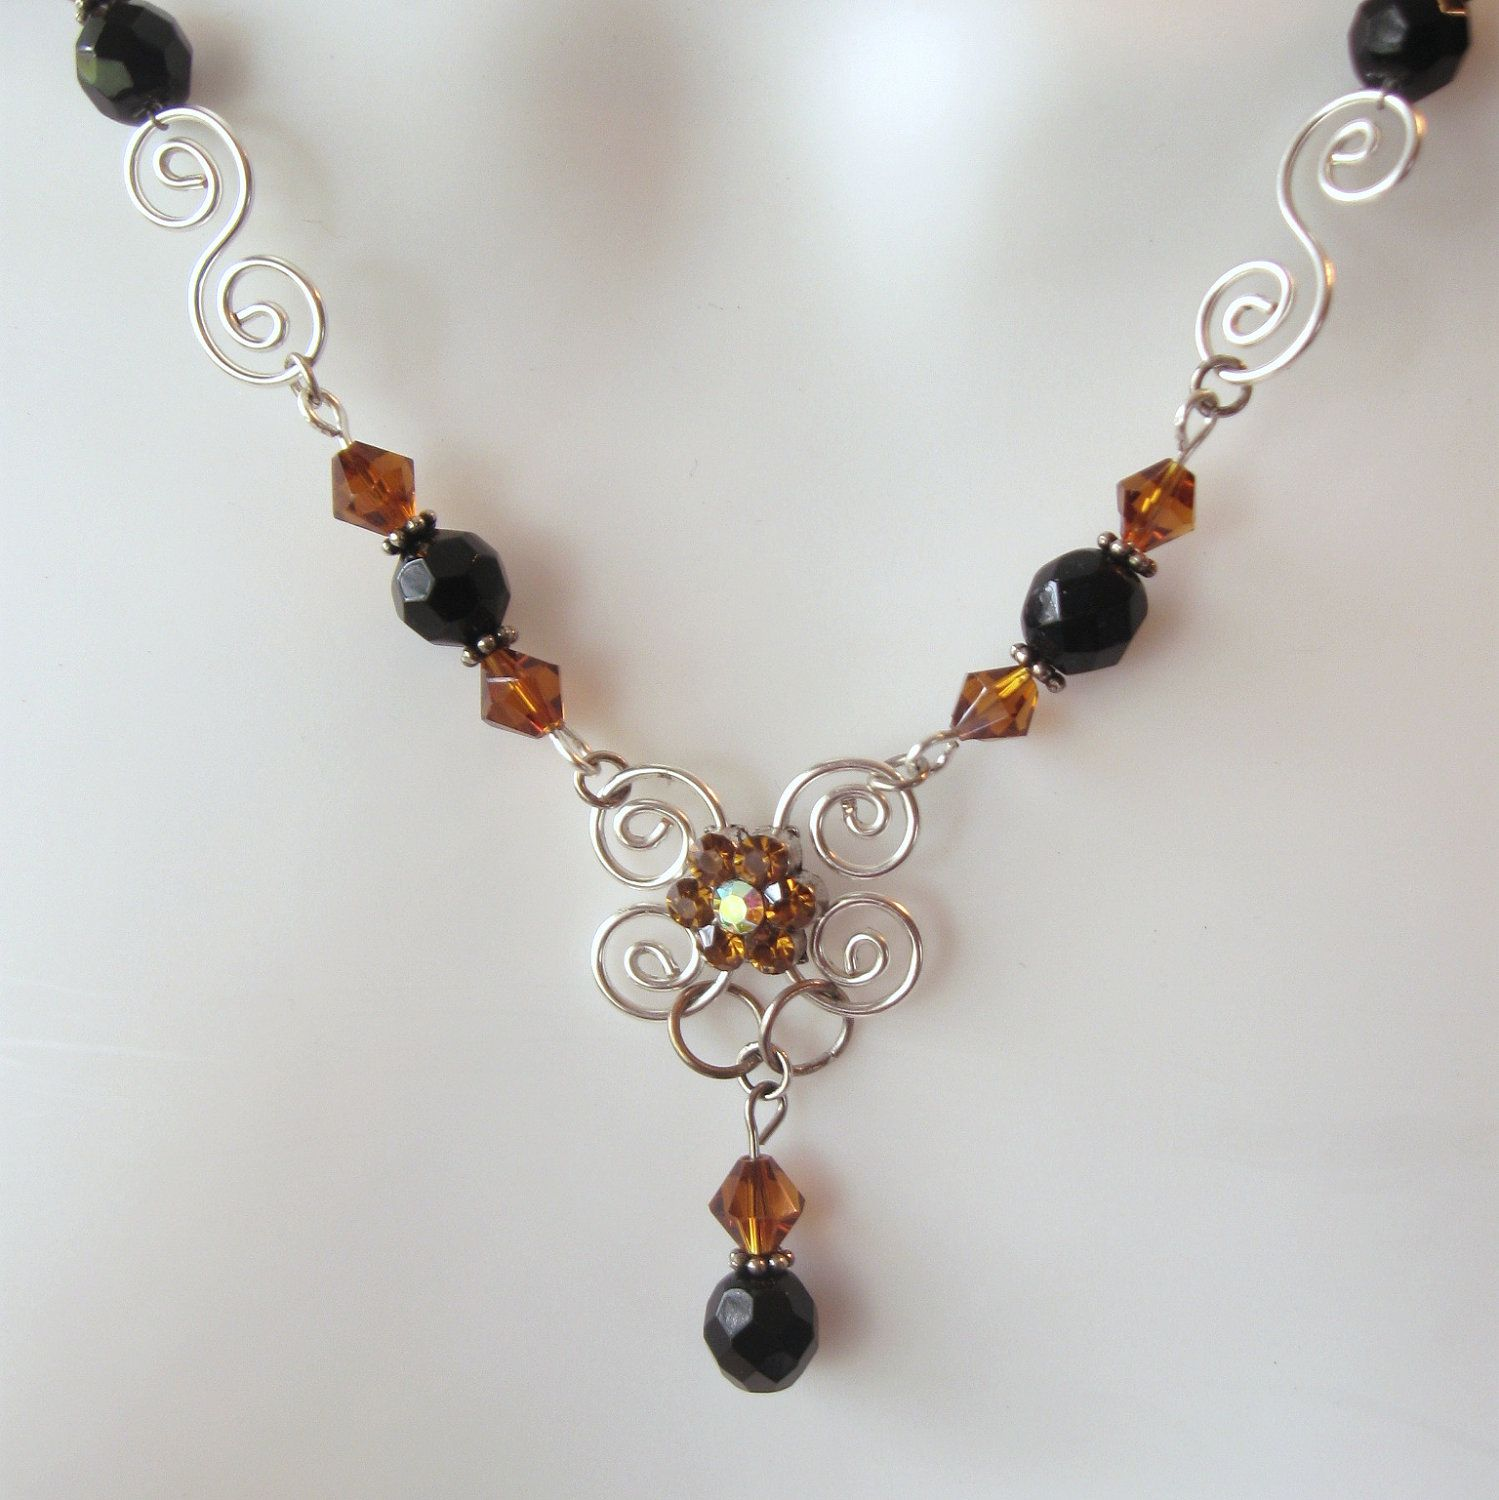 Image detail for -Wire Work Necklace Set with Silver Swirled Design ...